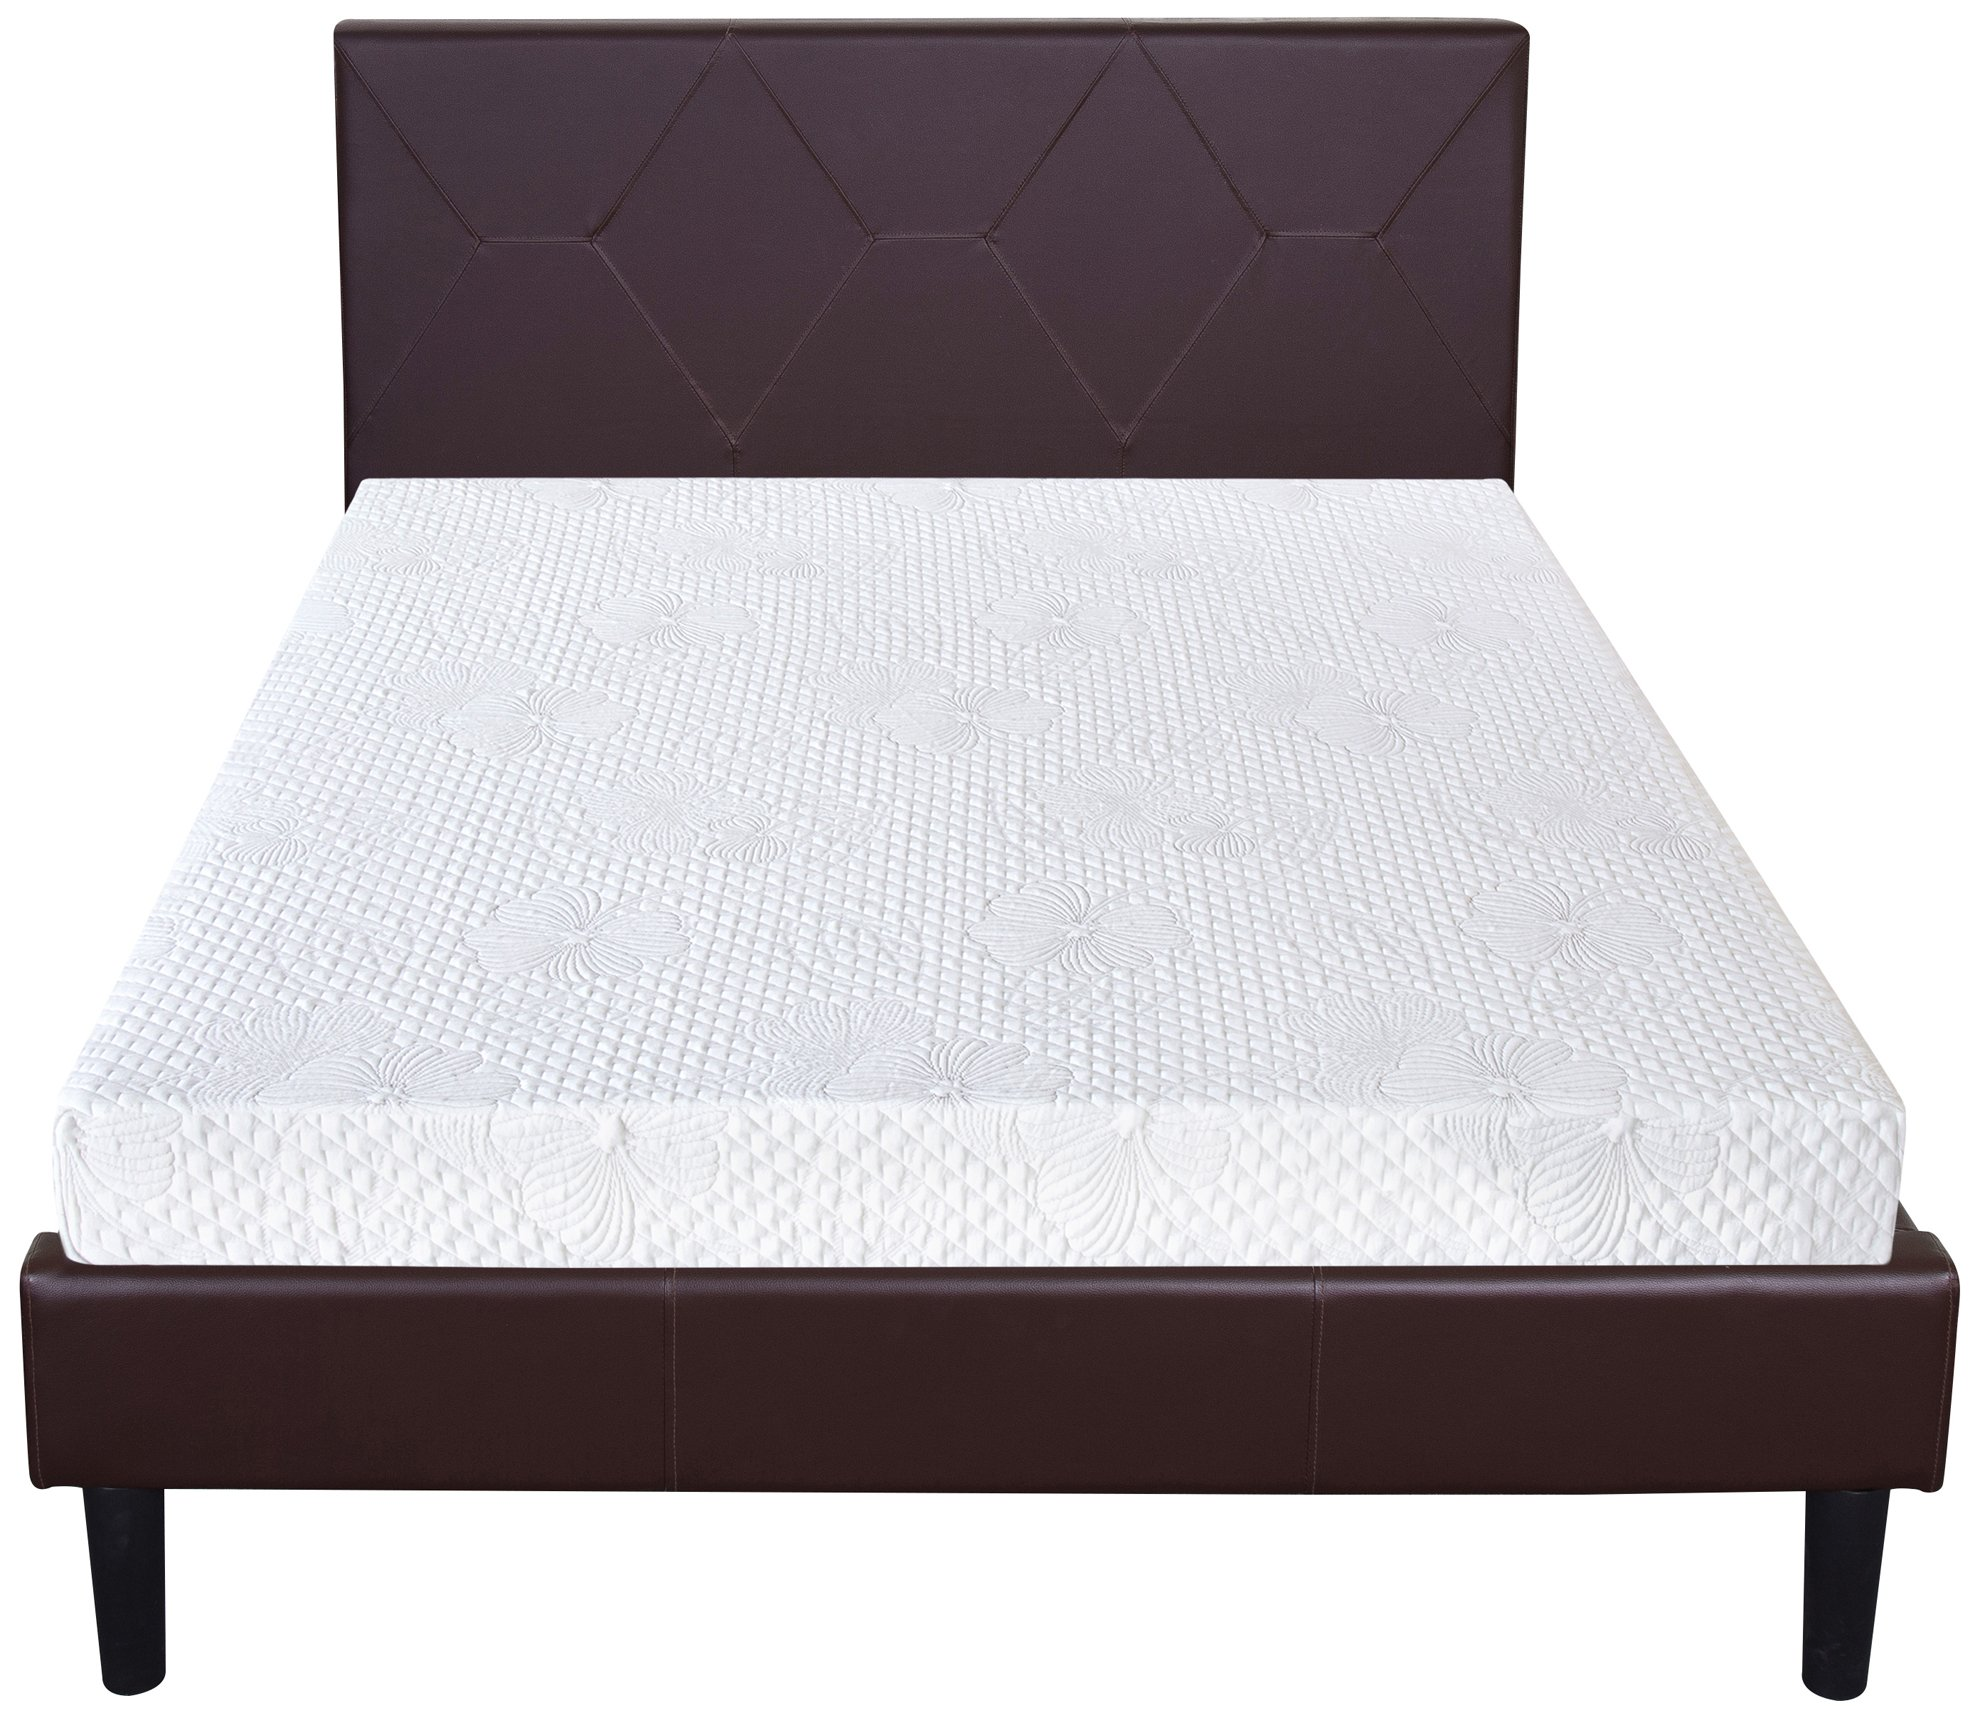 Olee Sleep 6 Inch Ventilated Multi Layered Memory Foam